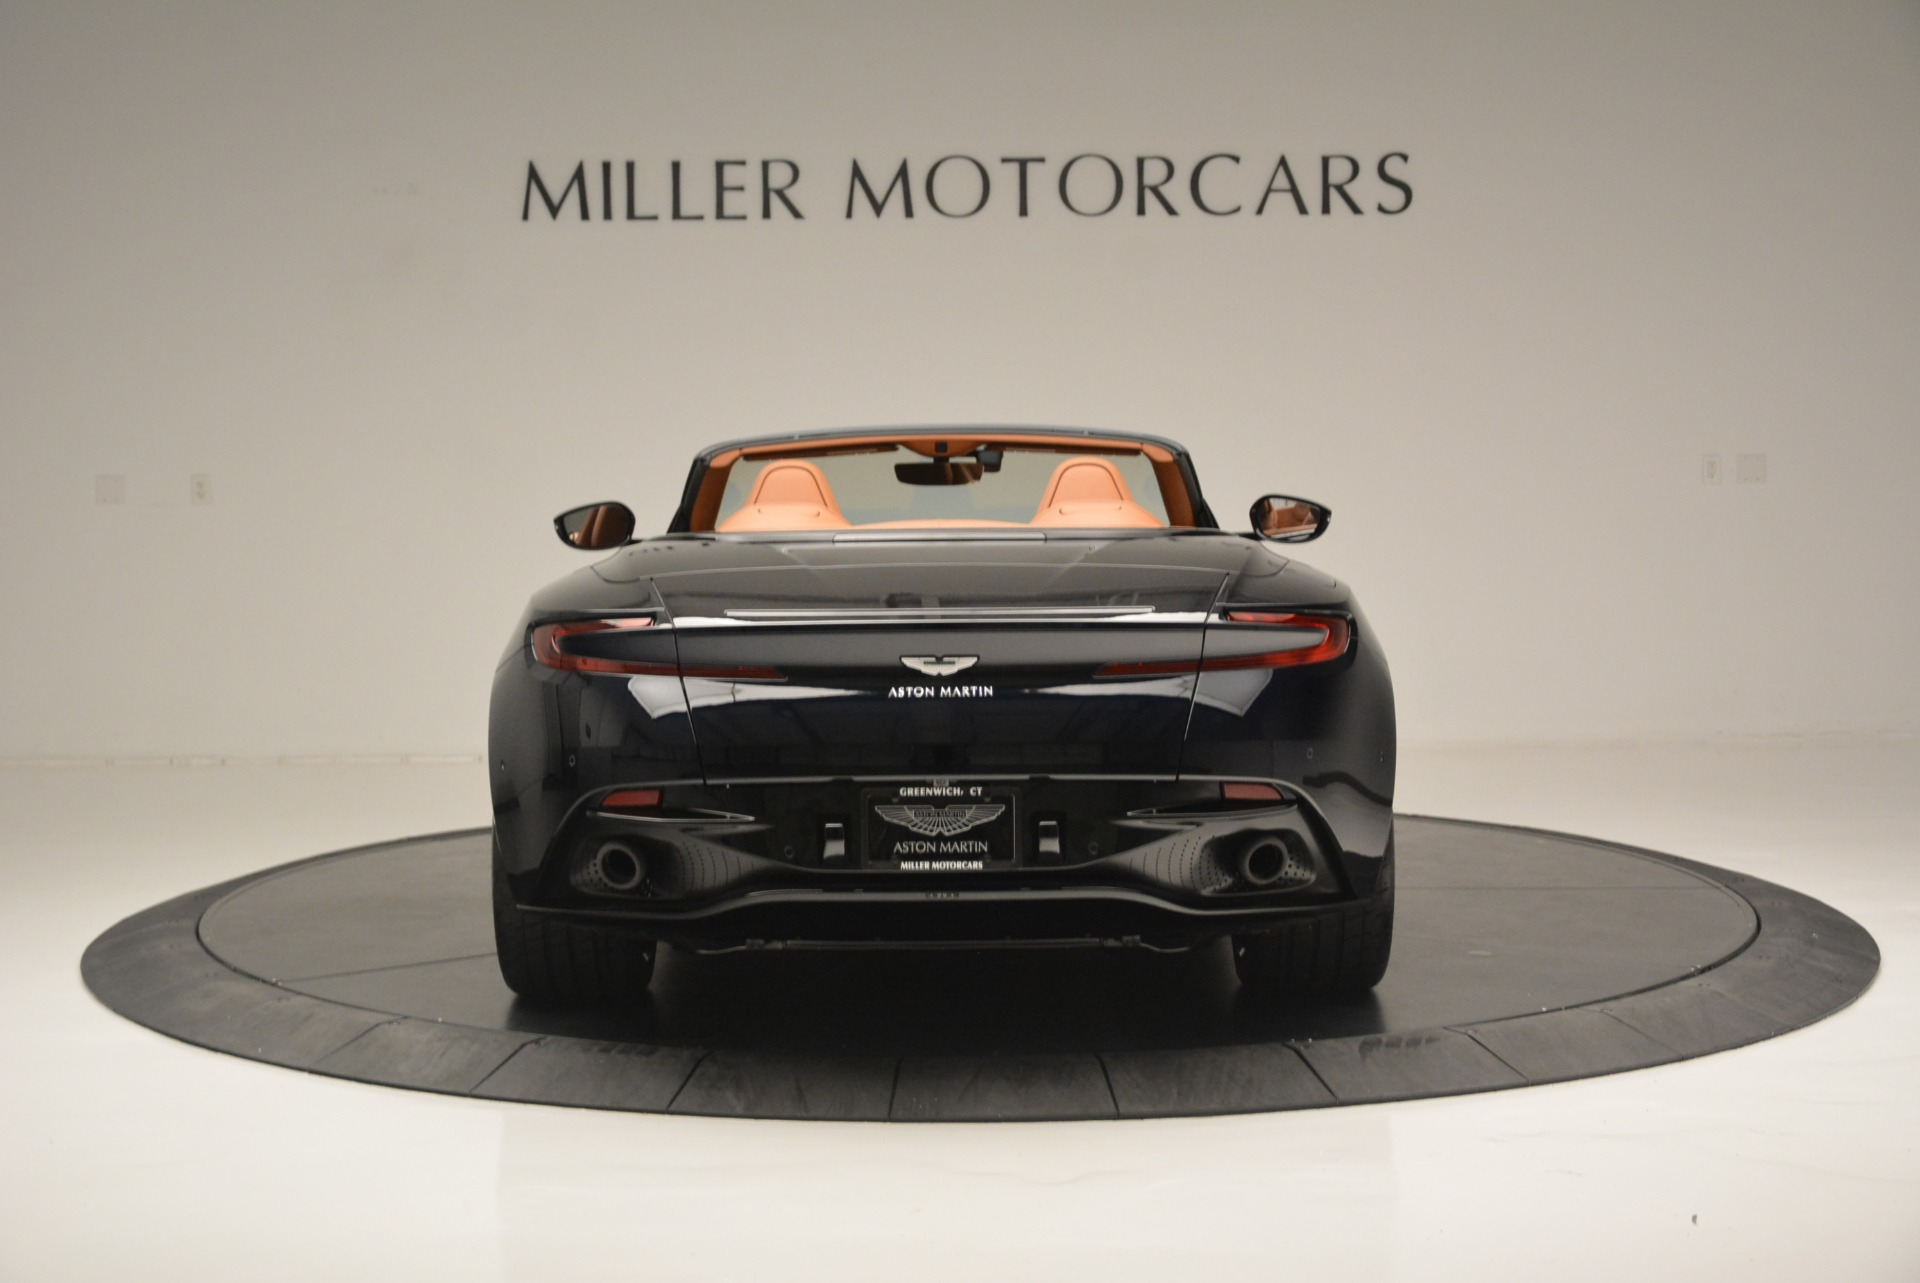 New 2019 Aston Martin DB11 Volante Volante For Sale In Westport, CT 2450_p6